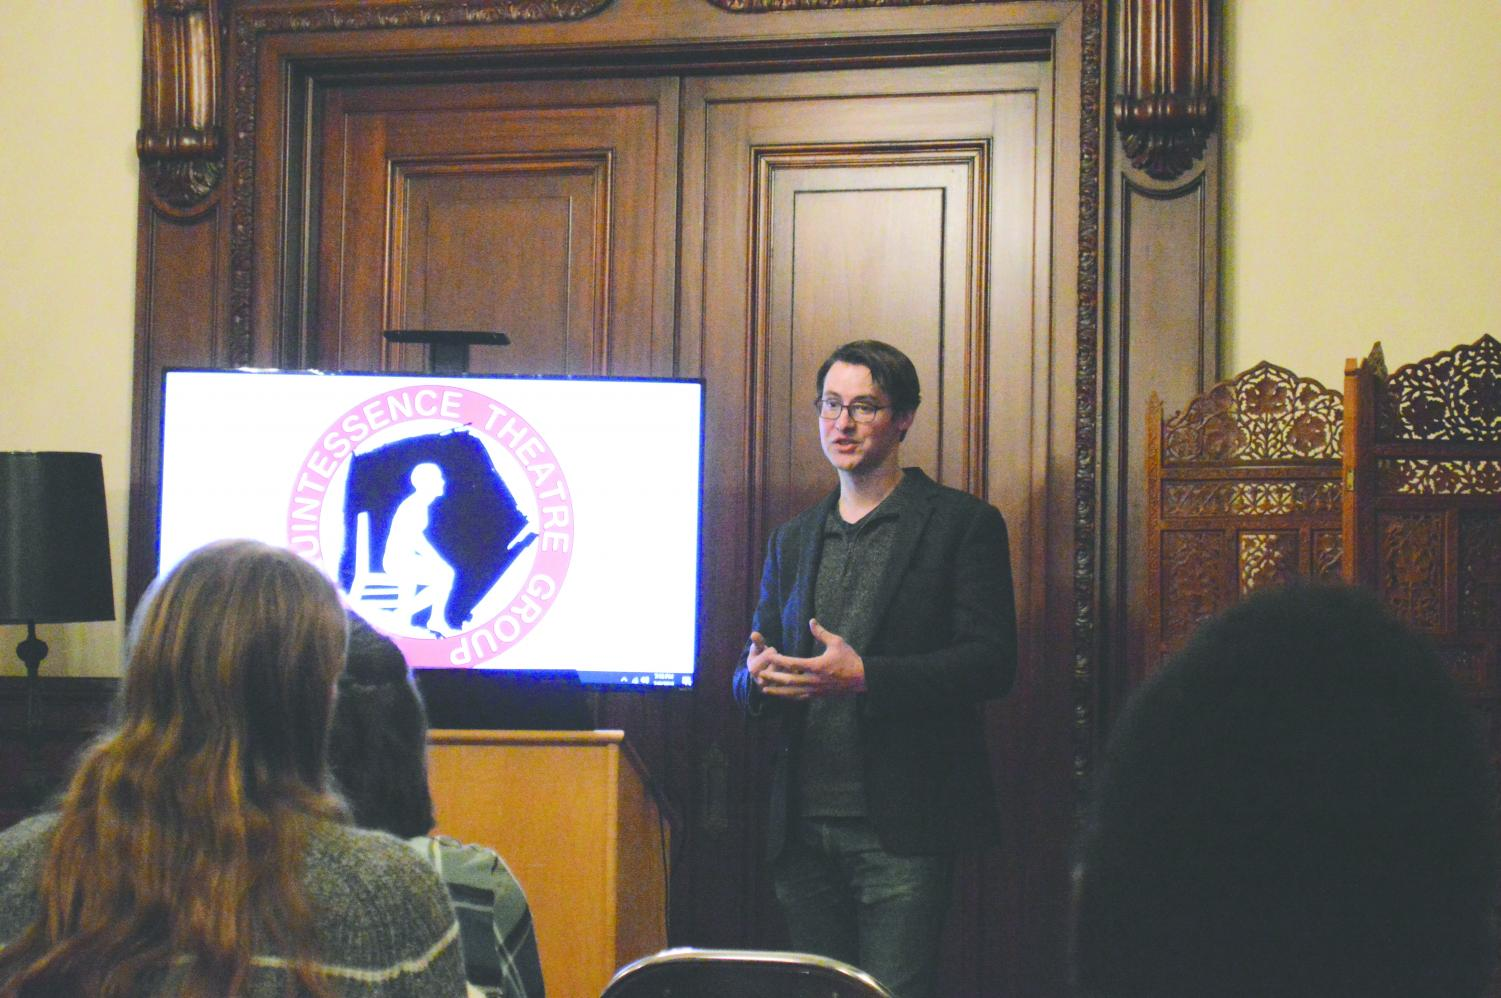 Alex Burns discussed topics such as his love for Shakespeare and writing plays.